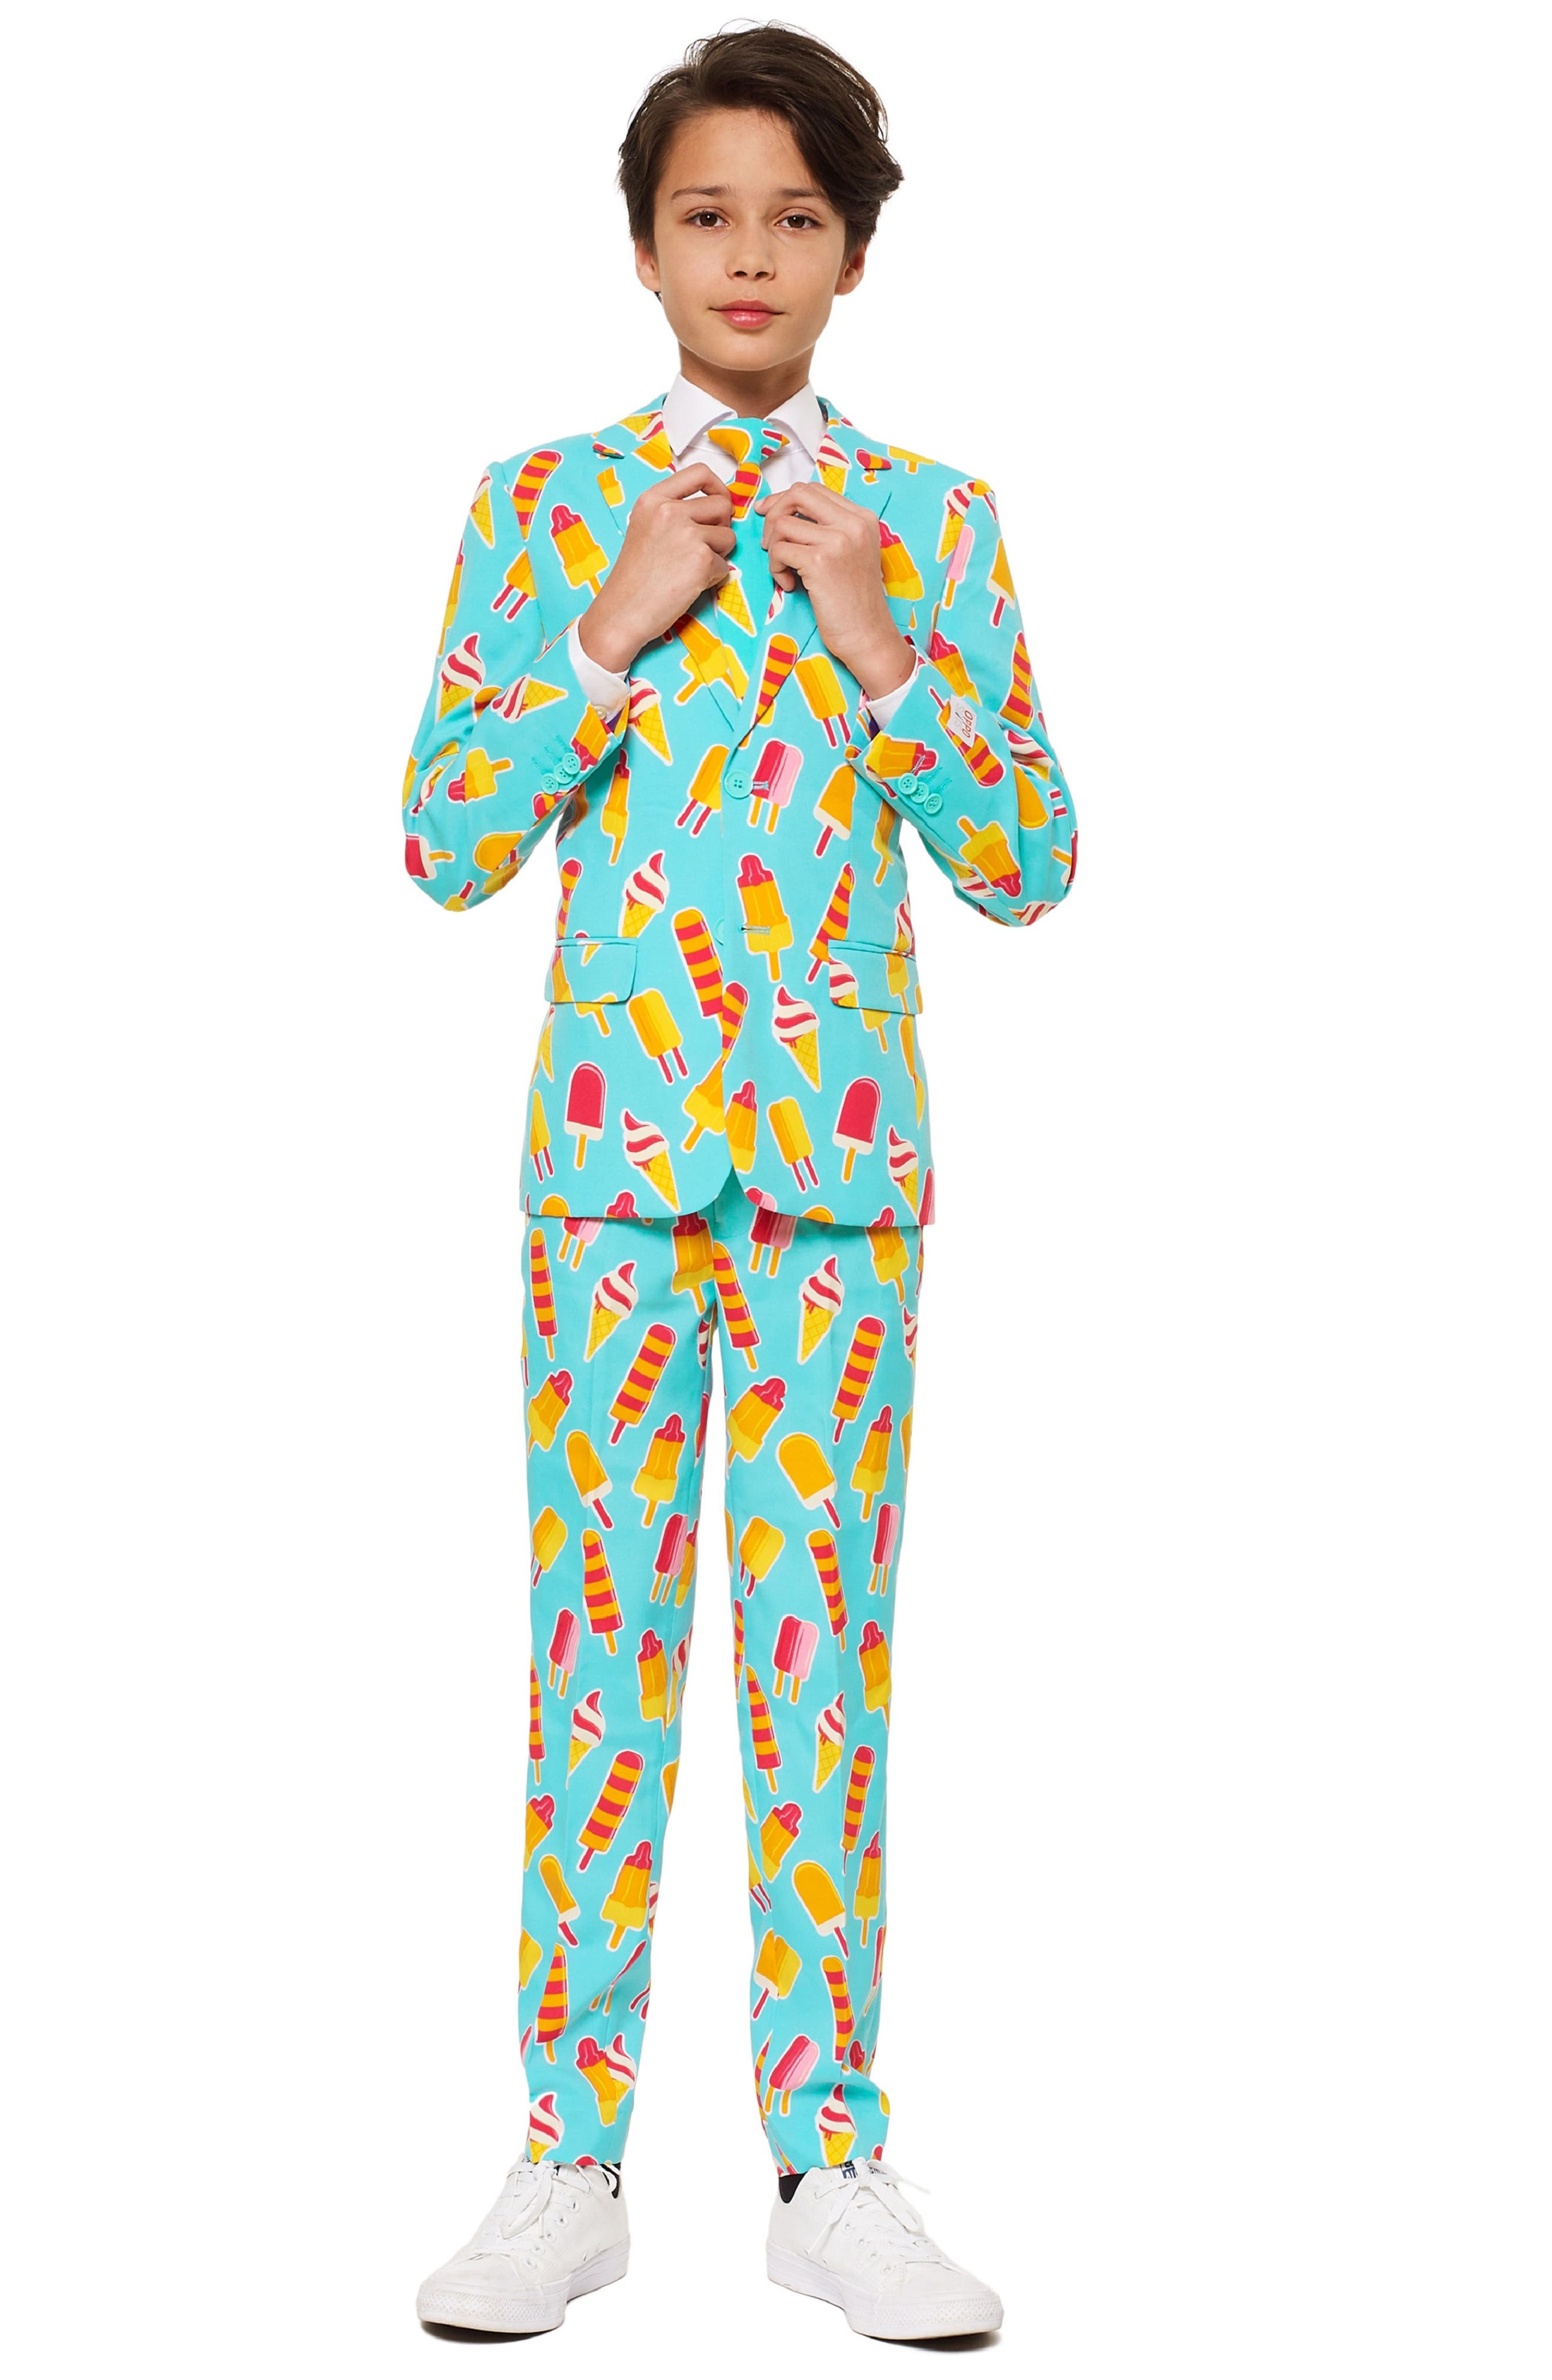 Cool Cones Two-Piece Suit with Tie,                             Main thumbnail 1, color,                             BLUE/ GREEN